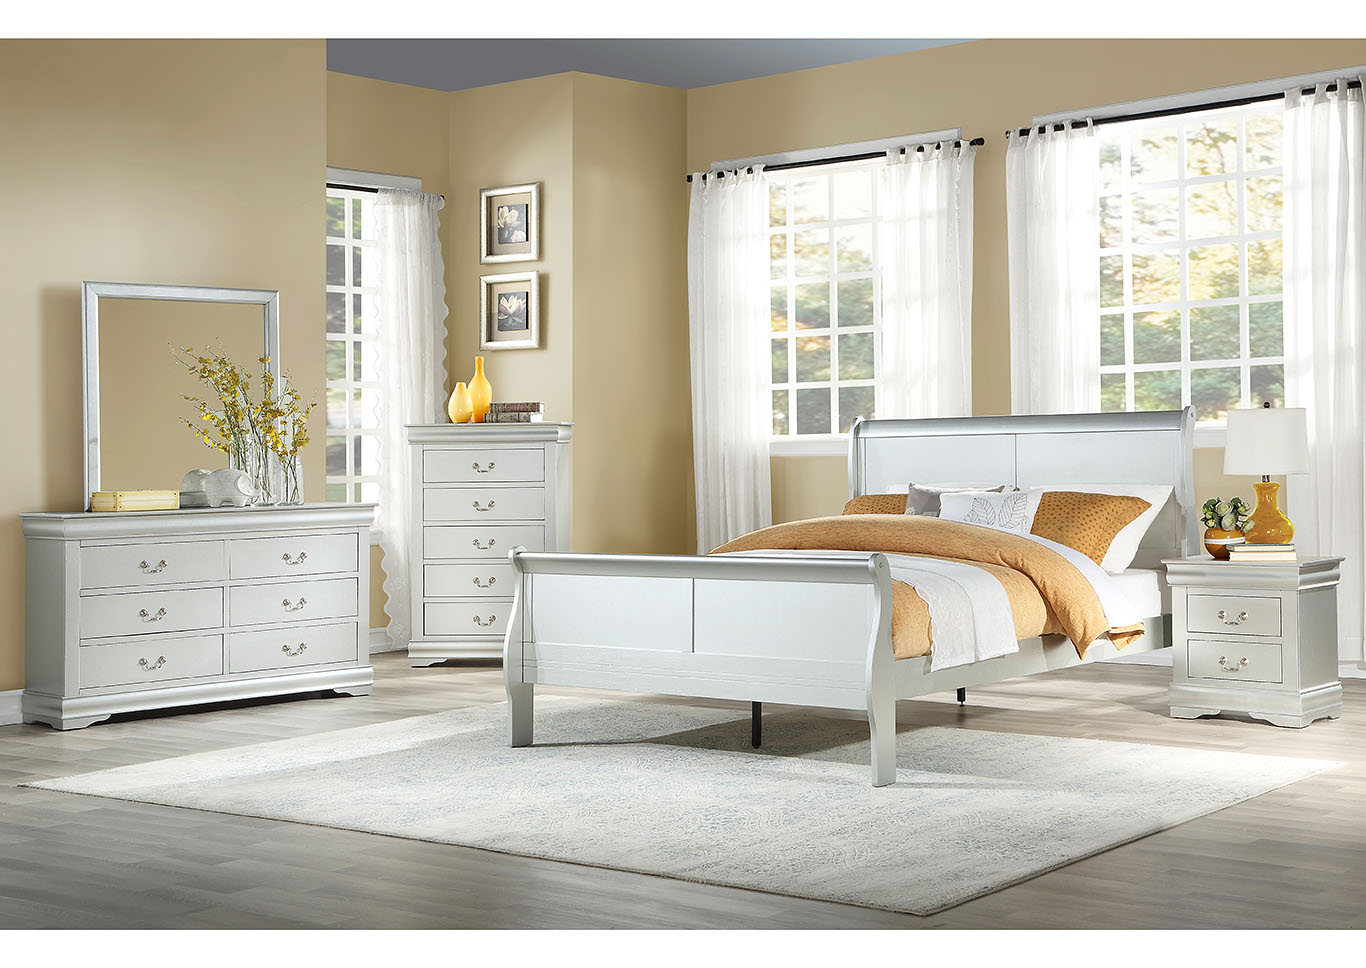 Louis Philippe Platinum Eastern King Sleigh Bed w/Dresser and Mirror,Acme